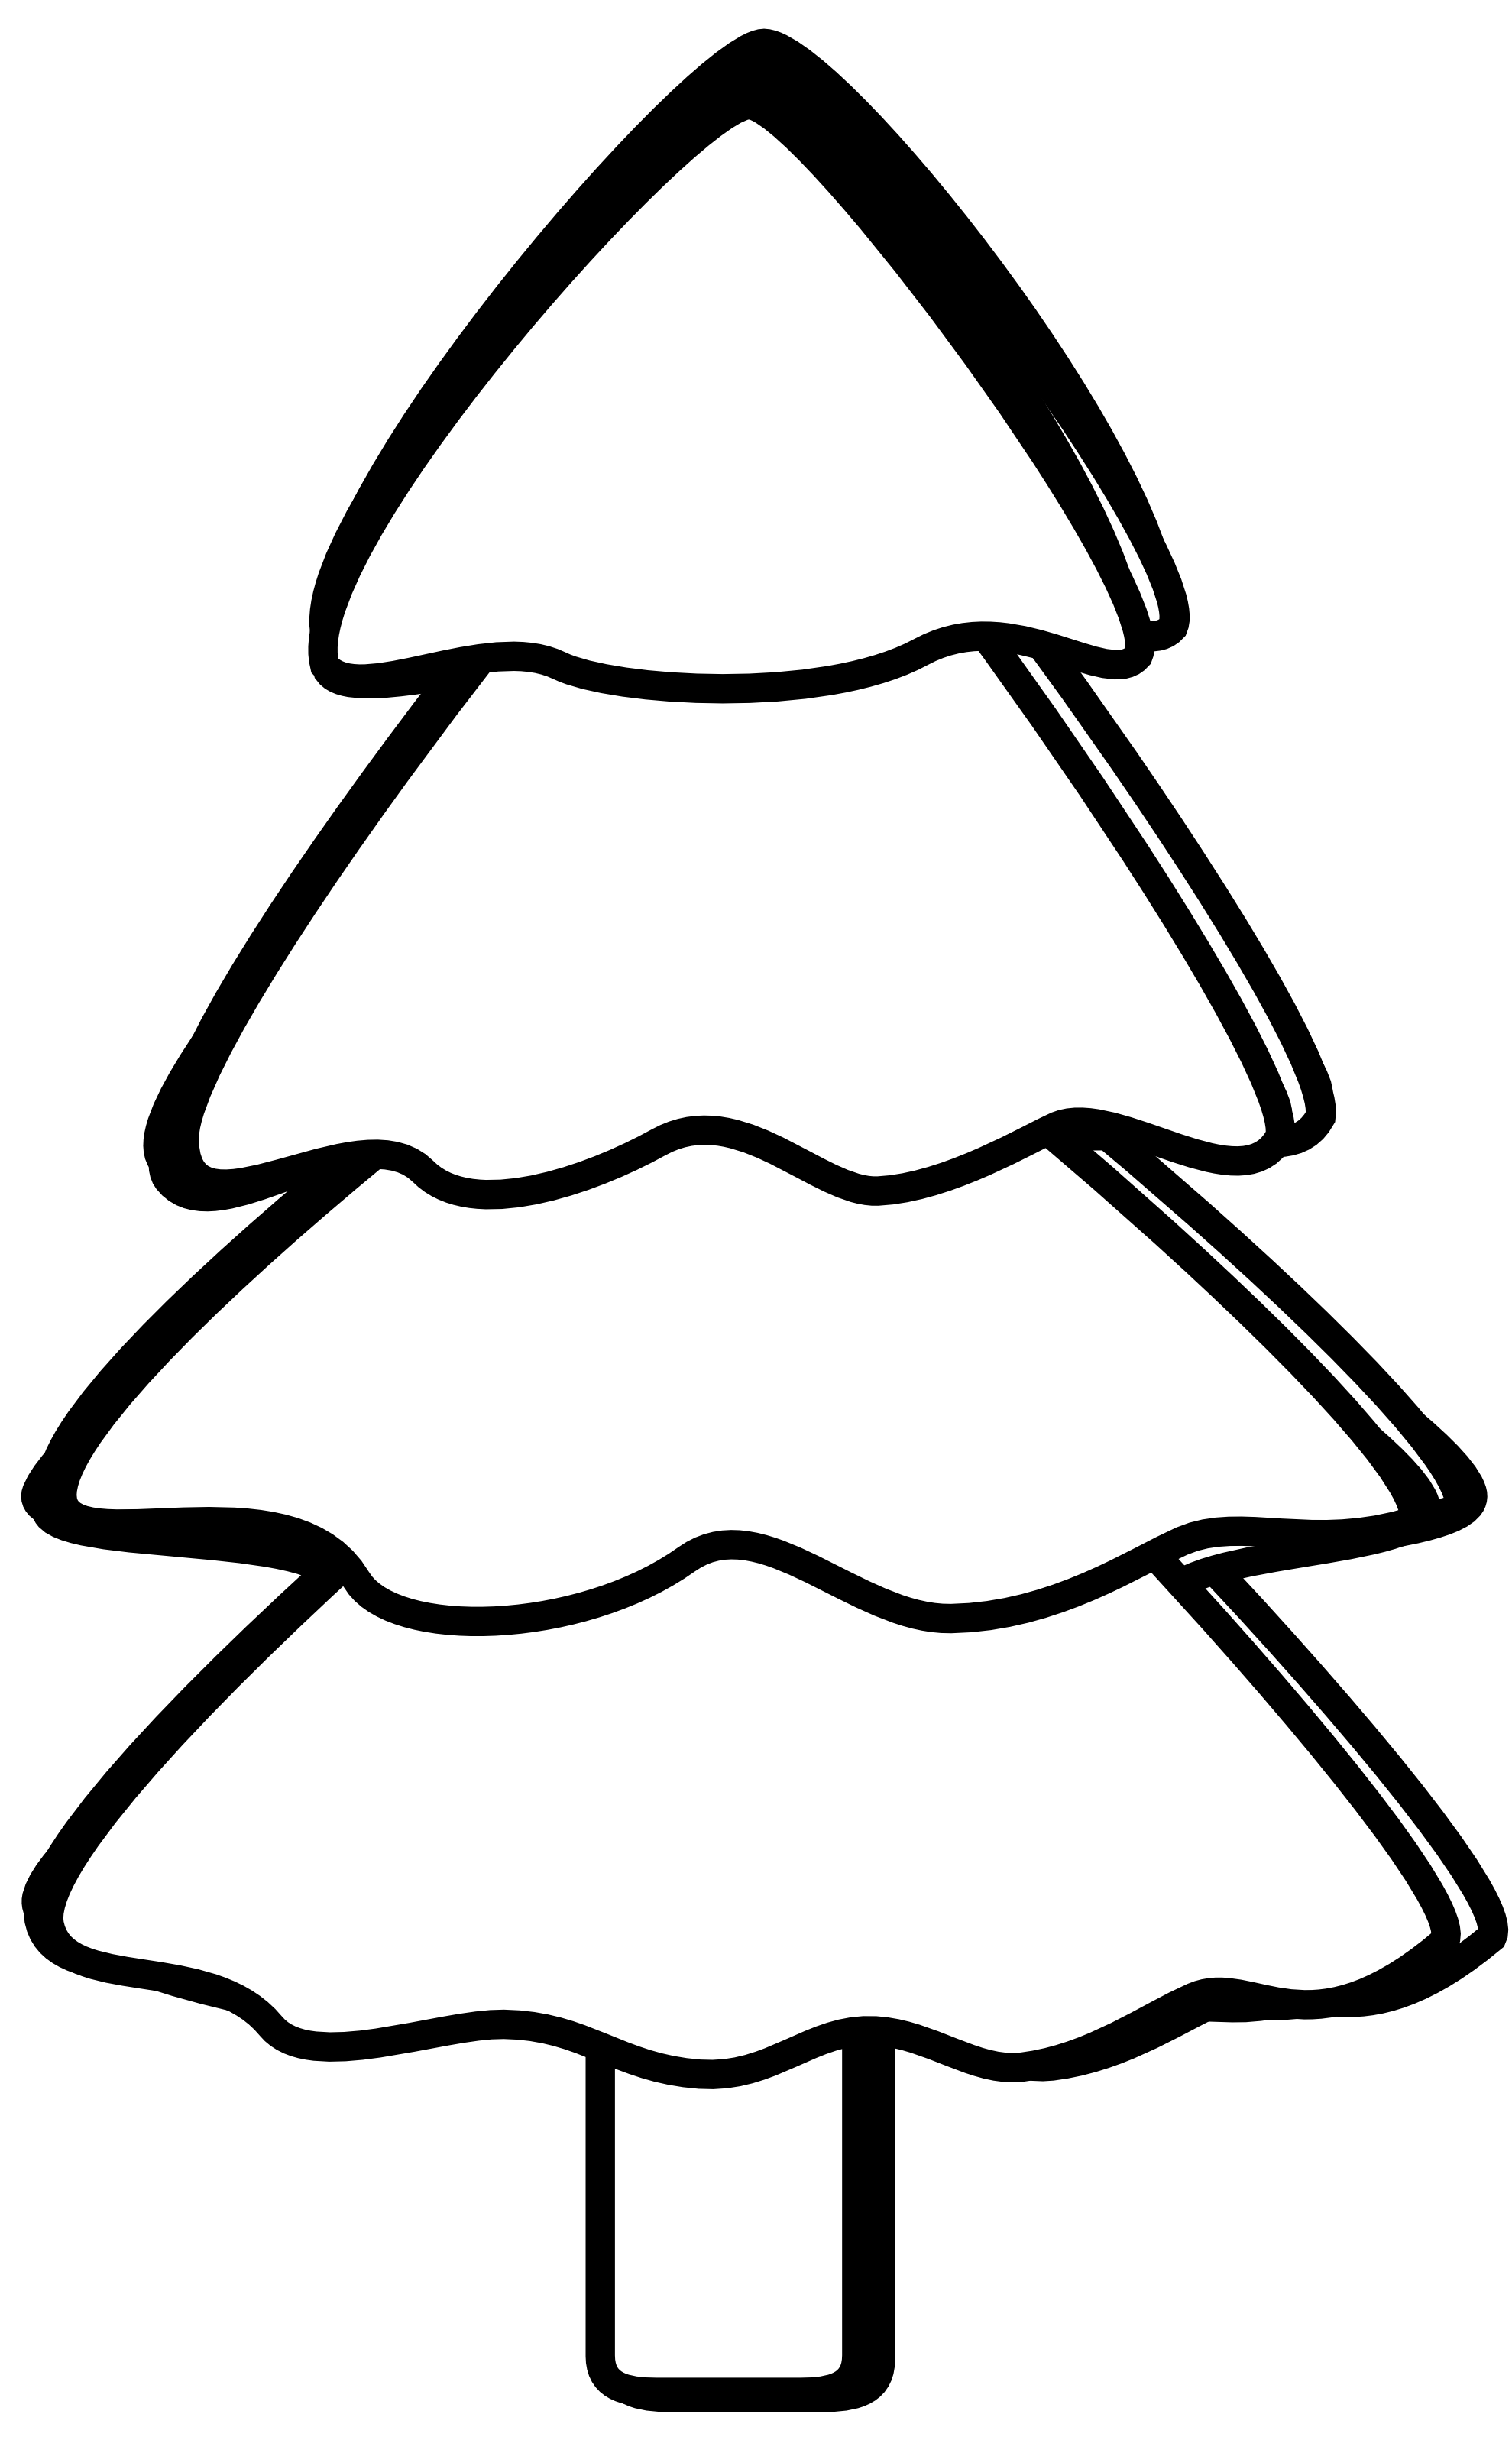 Black And White Often Abbreviated B W Or B W Is A Term Referring To A Number Of Monochrome Forms In Visual Art Clipart Black And White Clip Art Free Clip Art